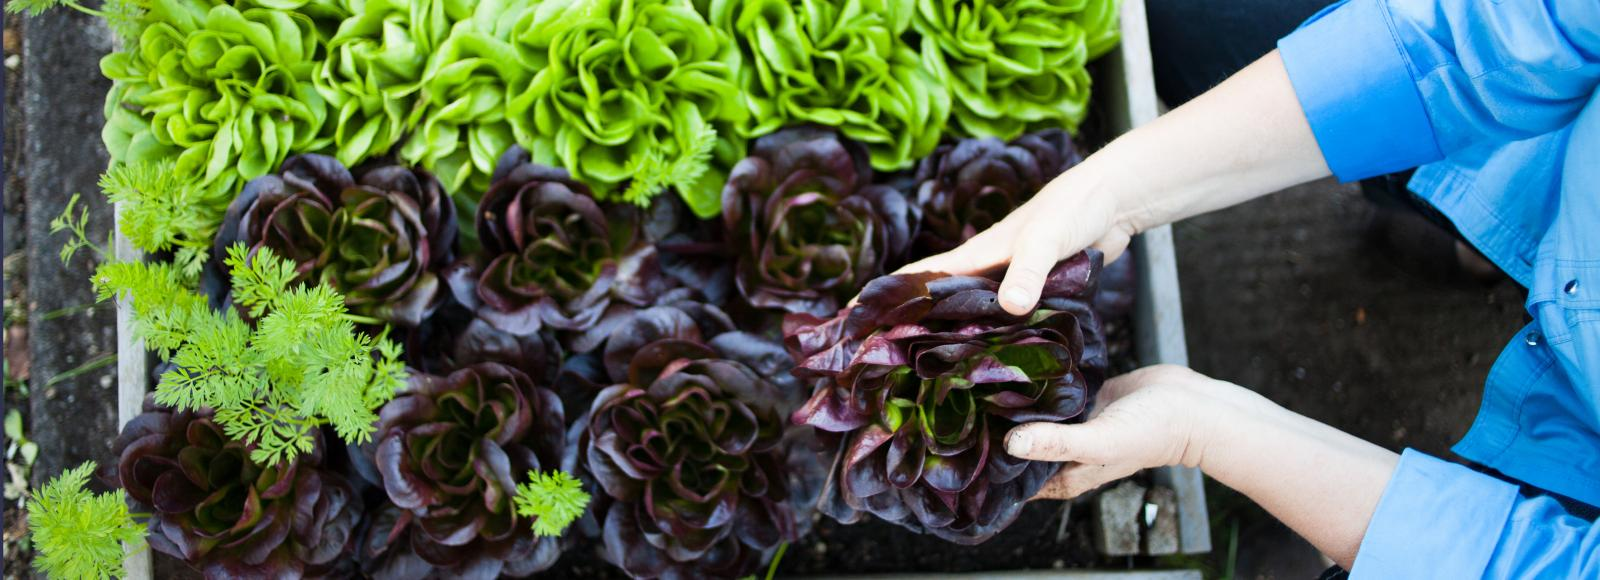 A pair of hands reach into a planter box filled with two varieties of romaine lettuce